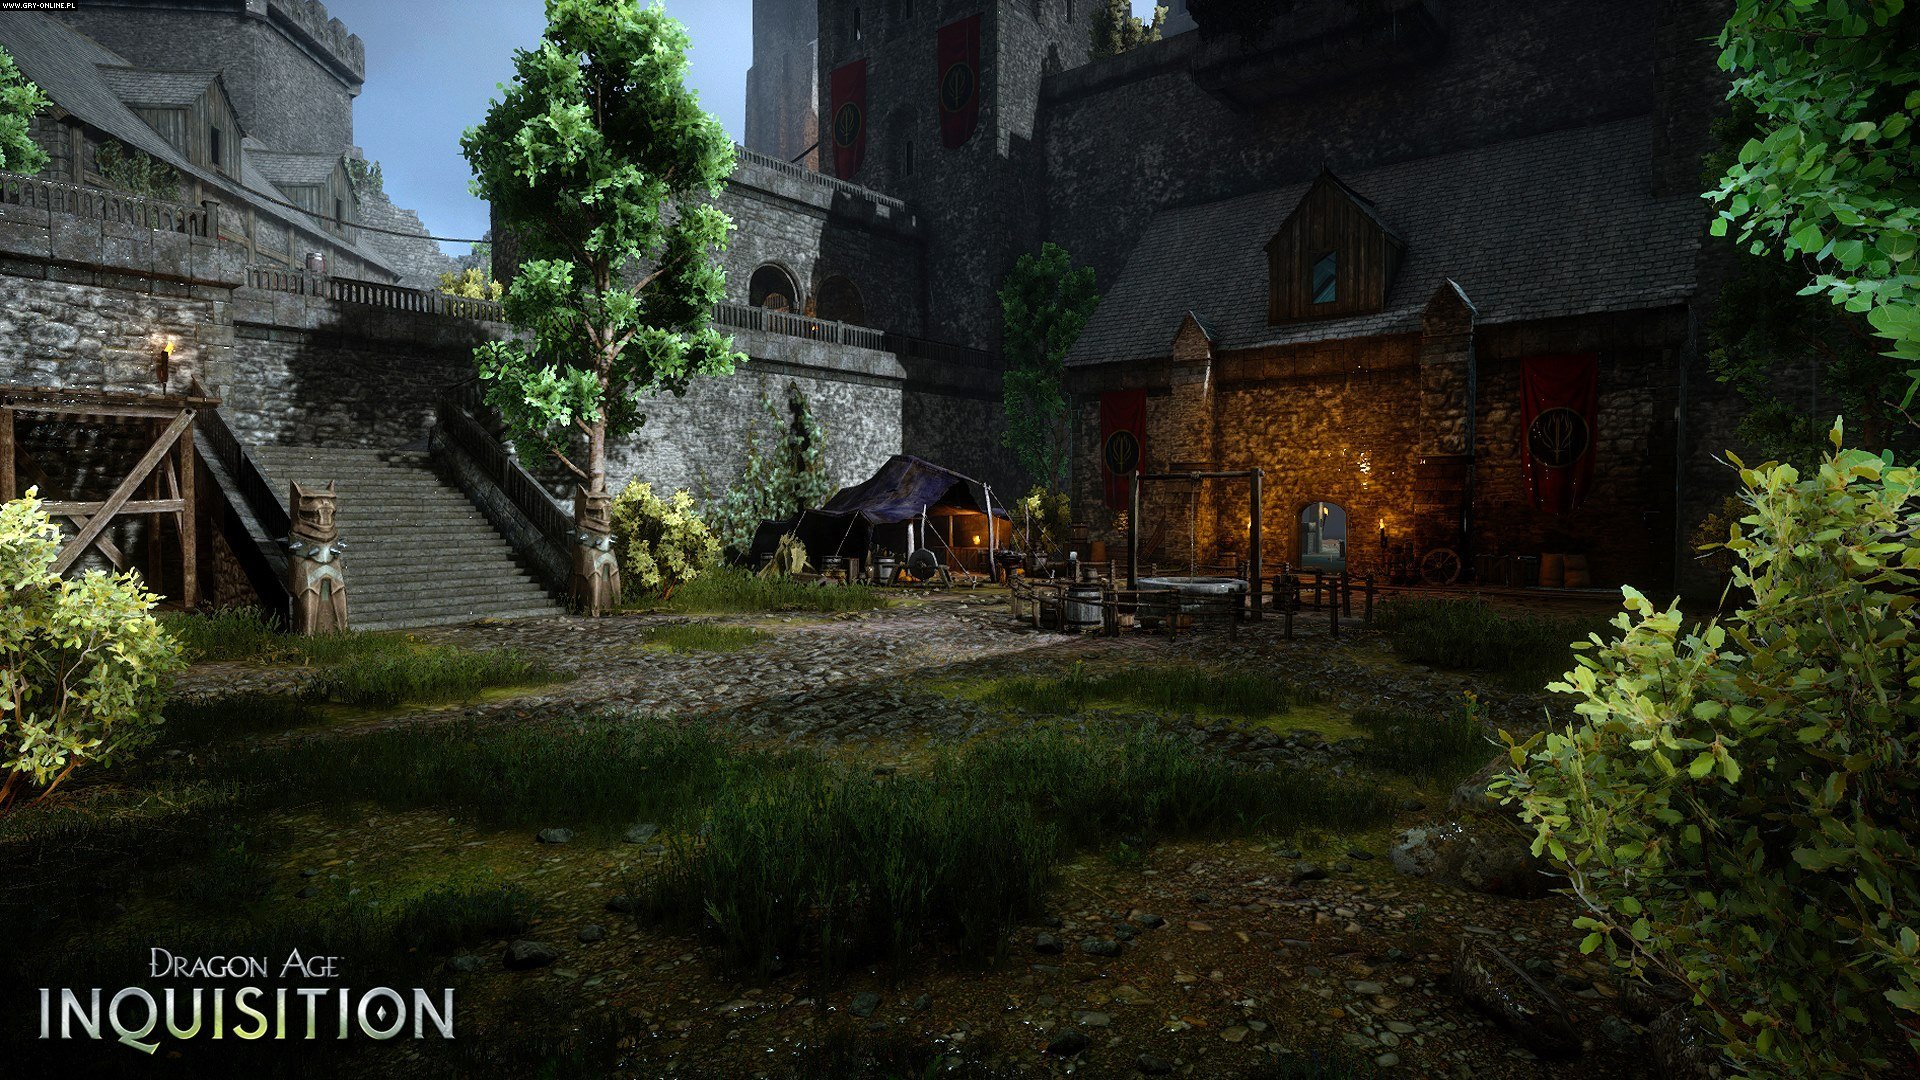 Dragon Age: Inkwizycja PC, X360, PS3 Gry Screen 87/225, BioWare Corporation, Electronic Arts Inc.